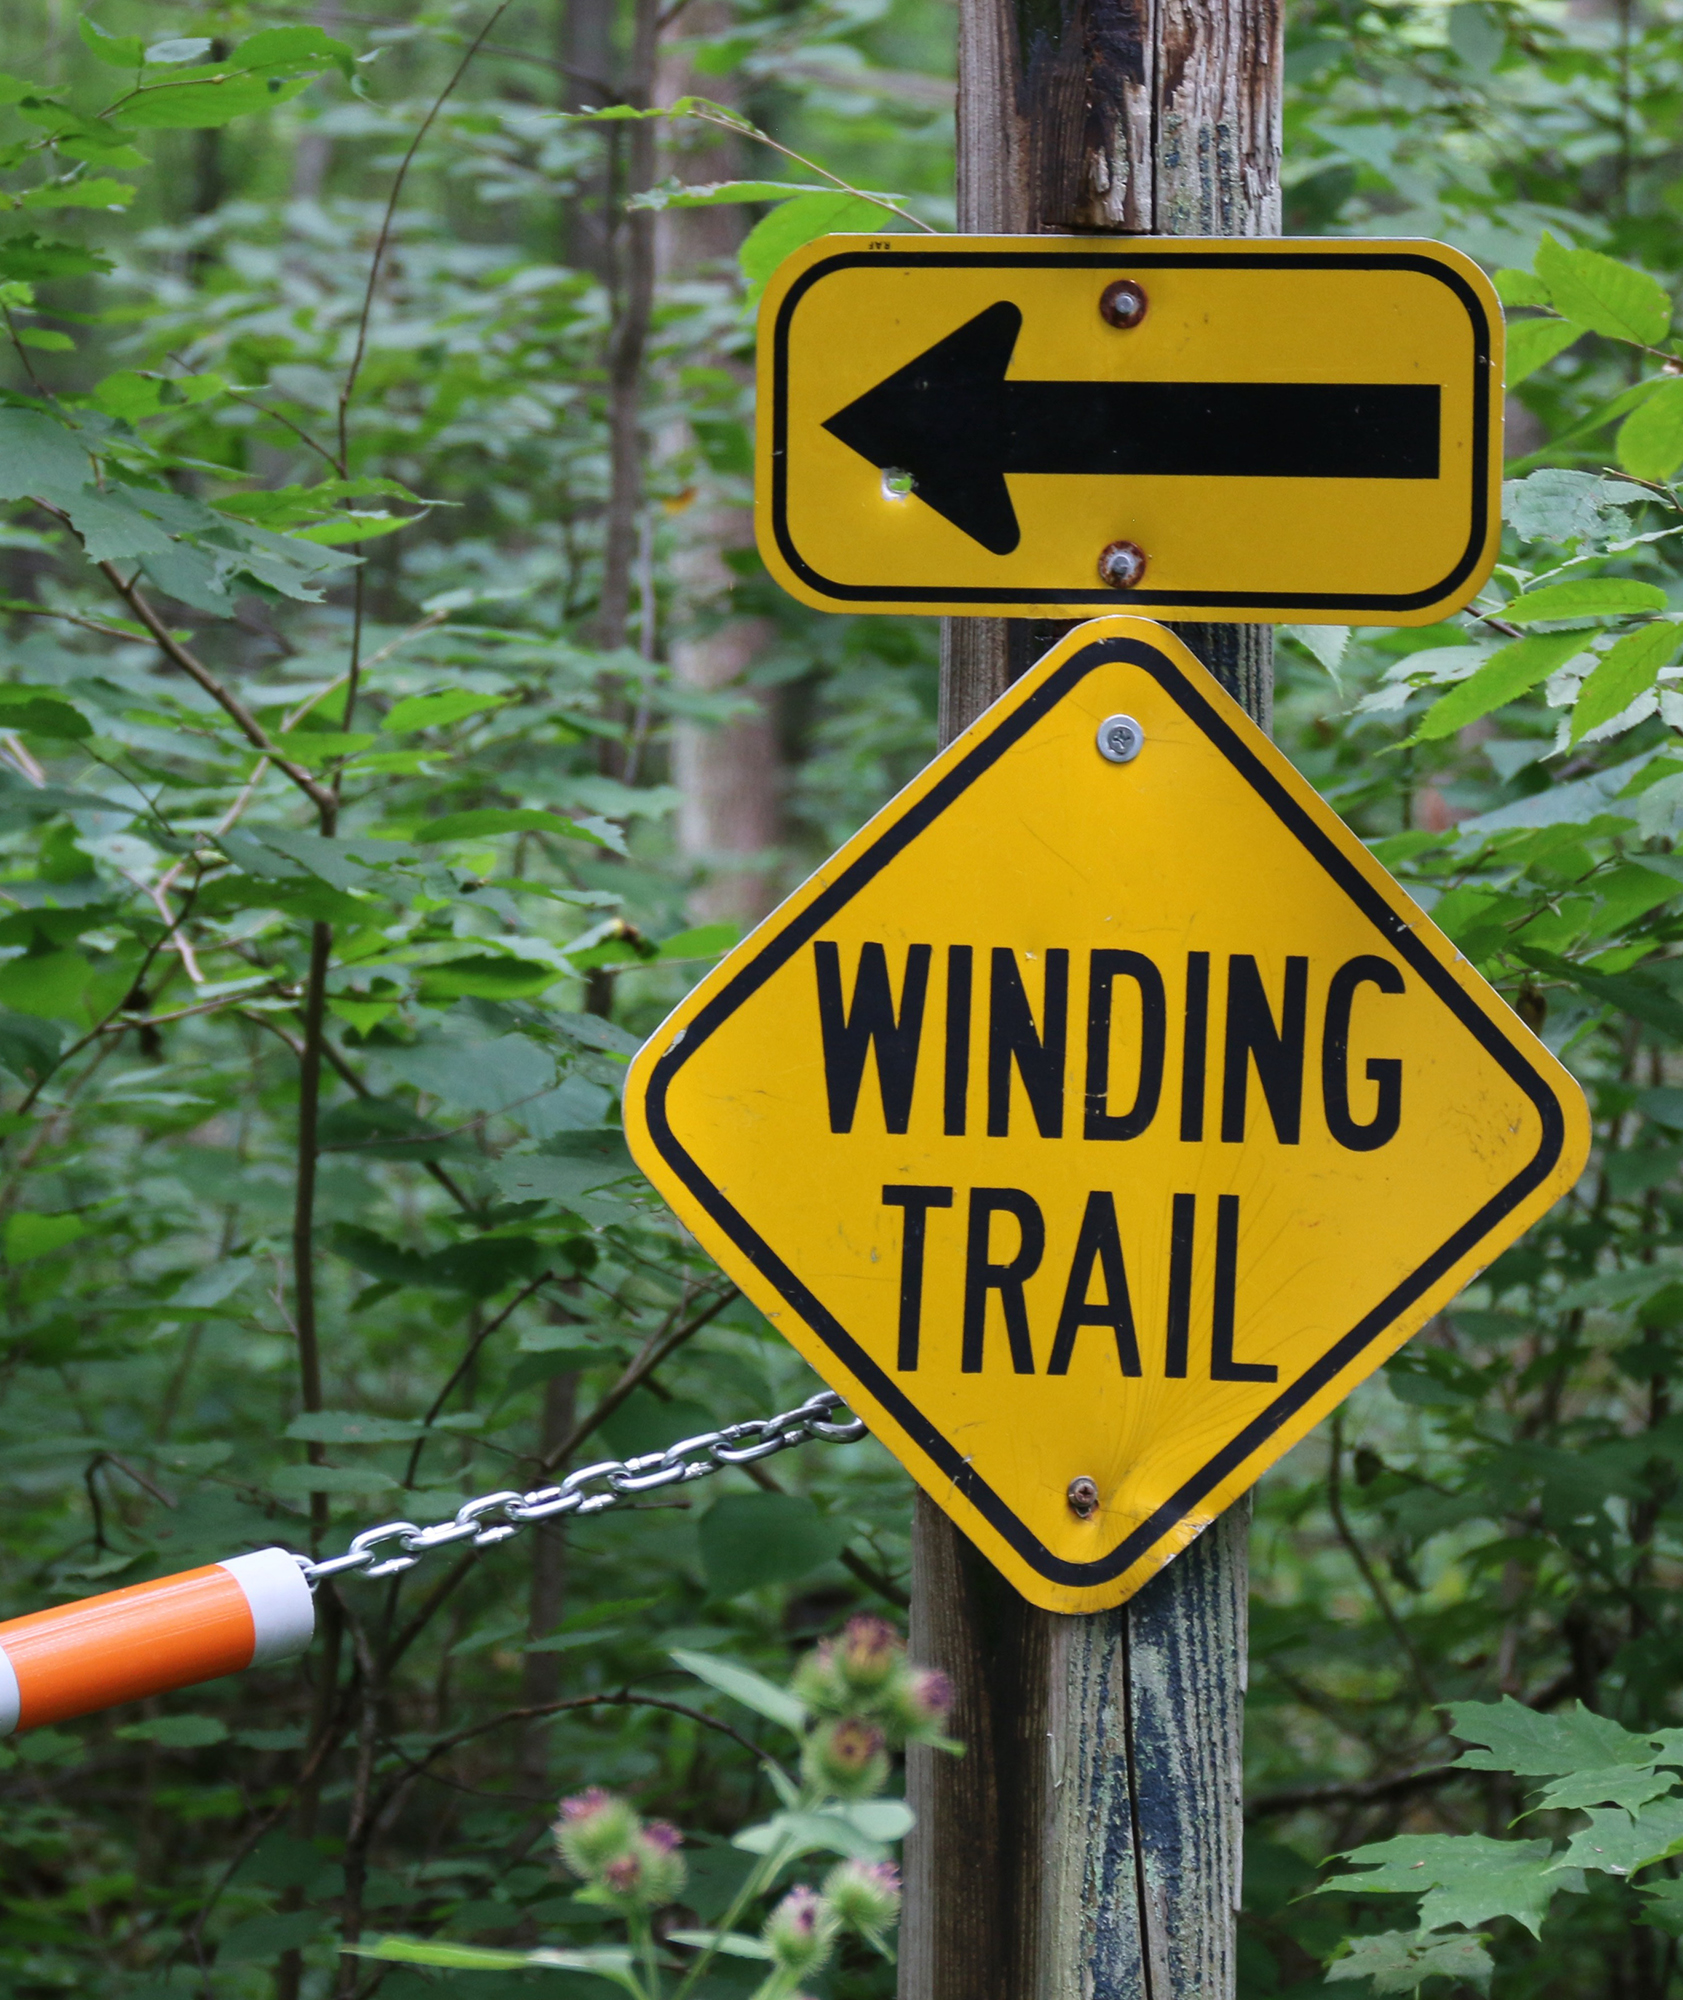 A winding trail, which is open for hiking now and snowmobiling in the winter, does indeed wind through the property. A shorter trail also takes hikers to the creek.